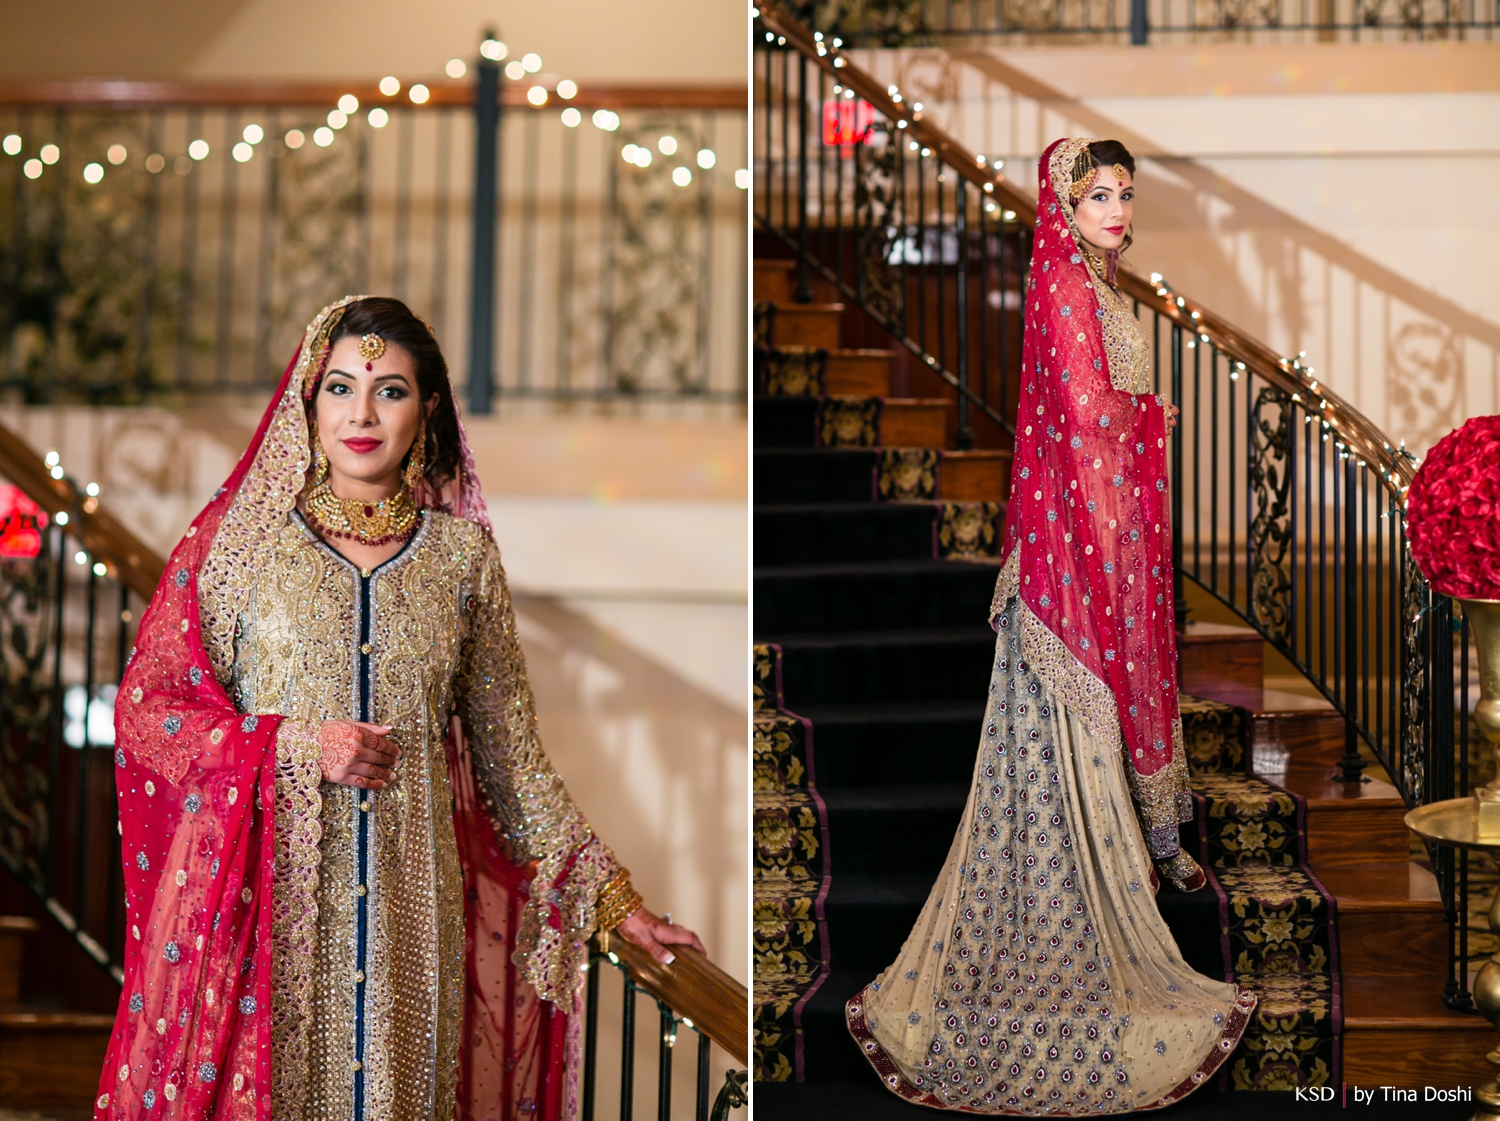 nj_south_asian_wedding_0074